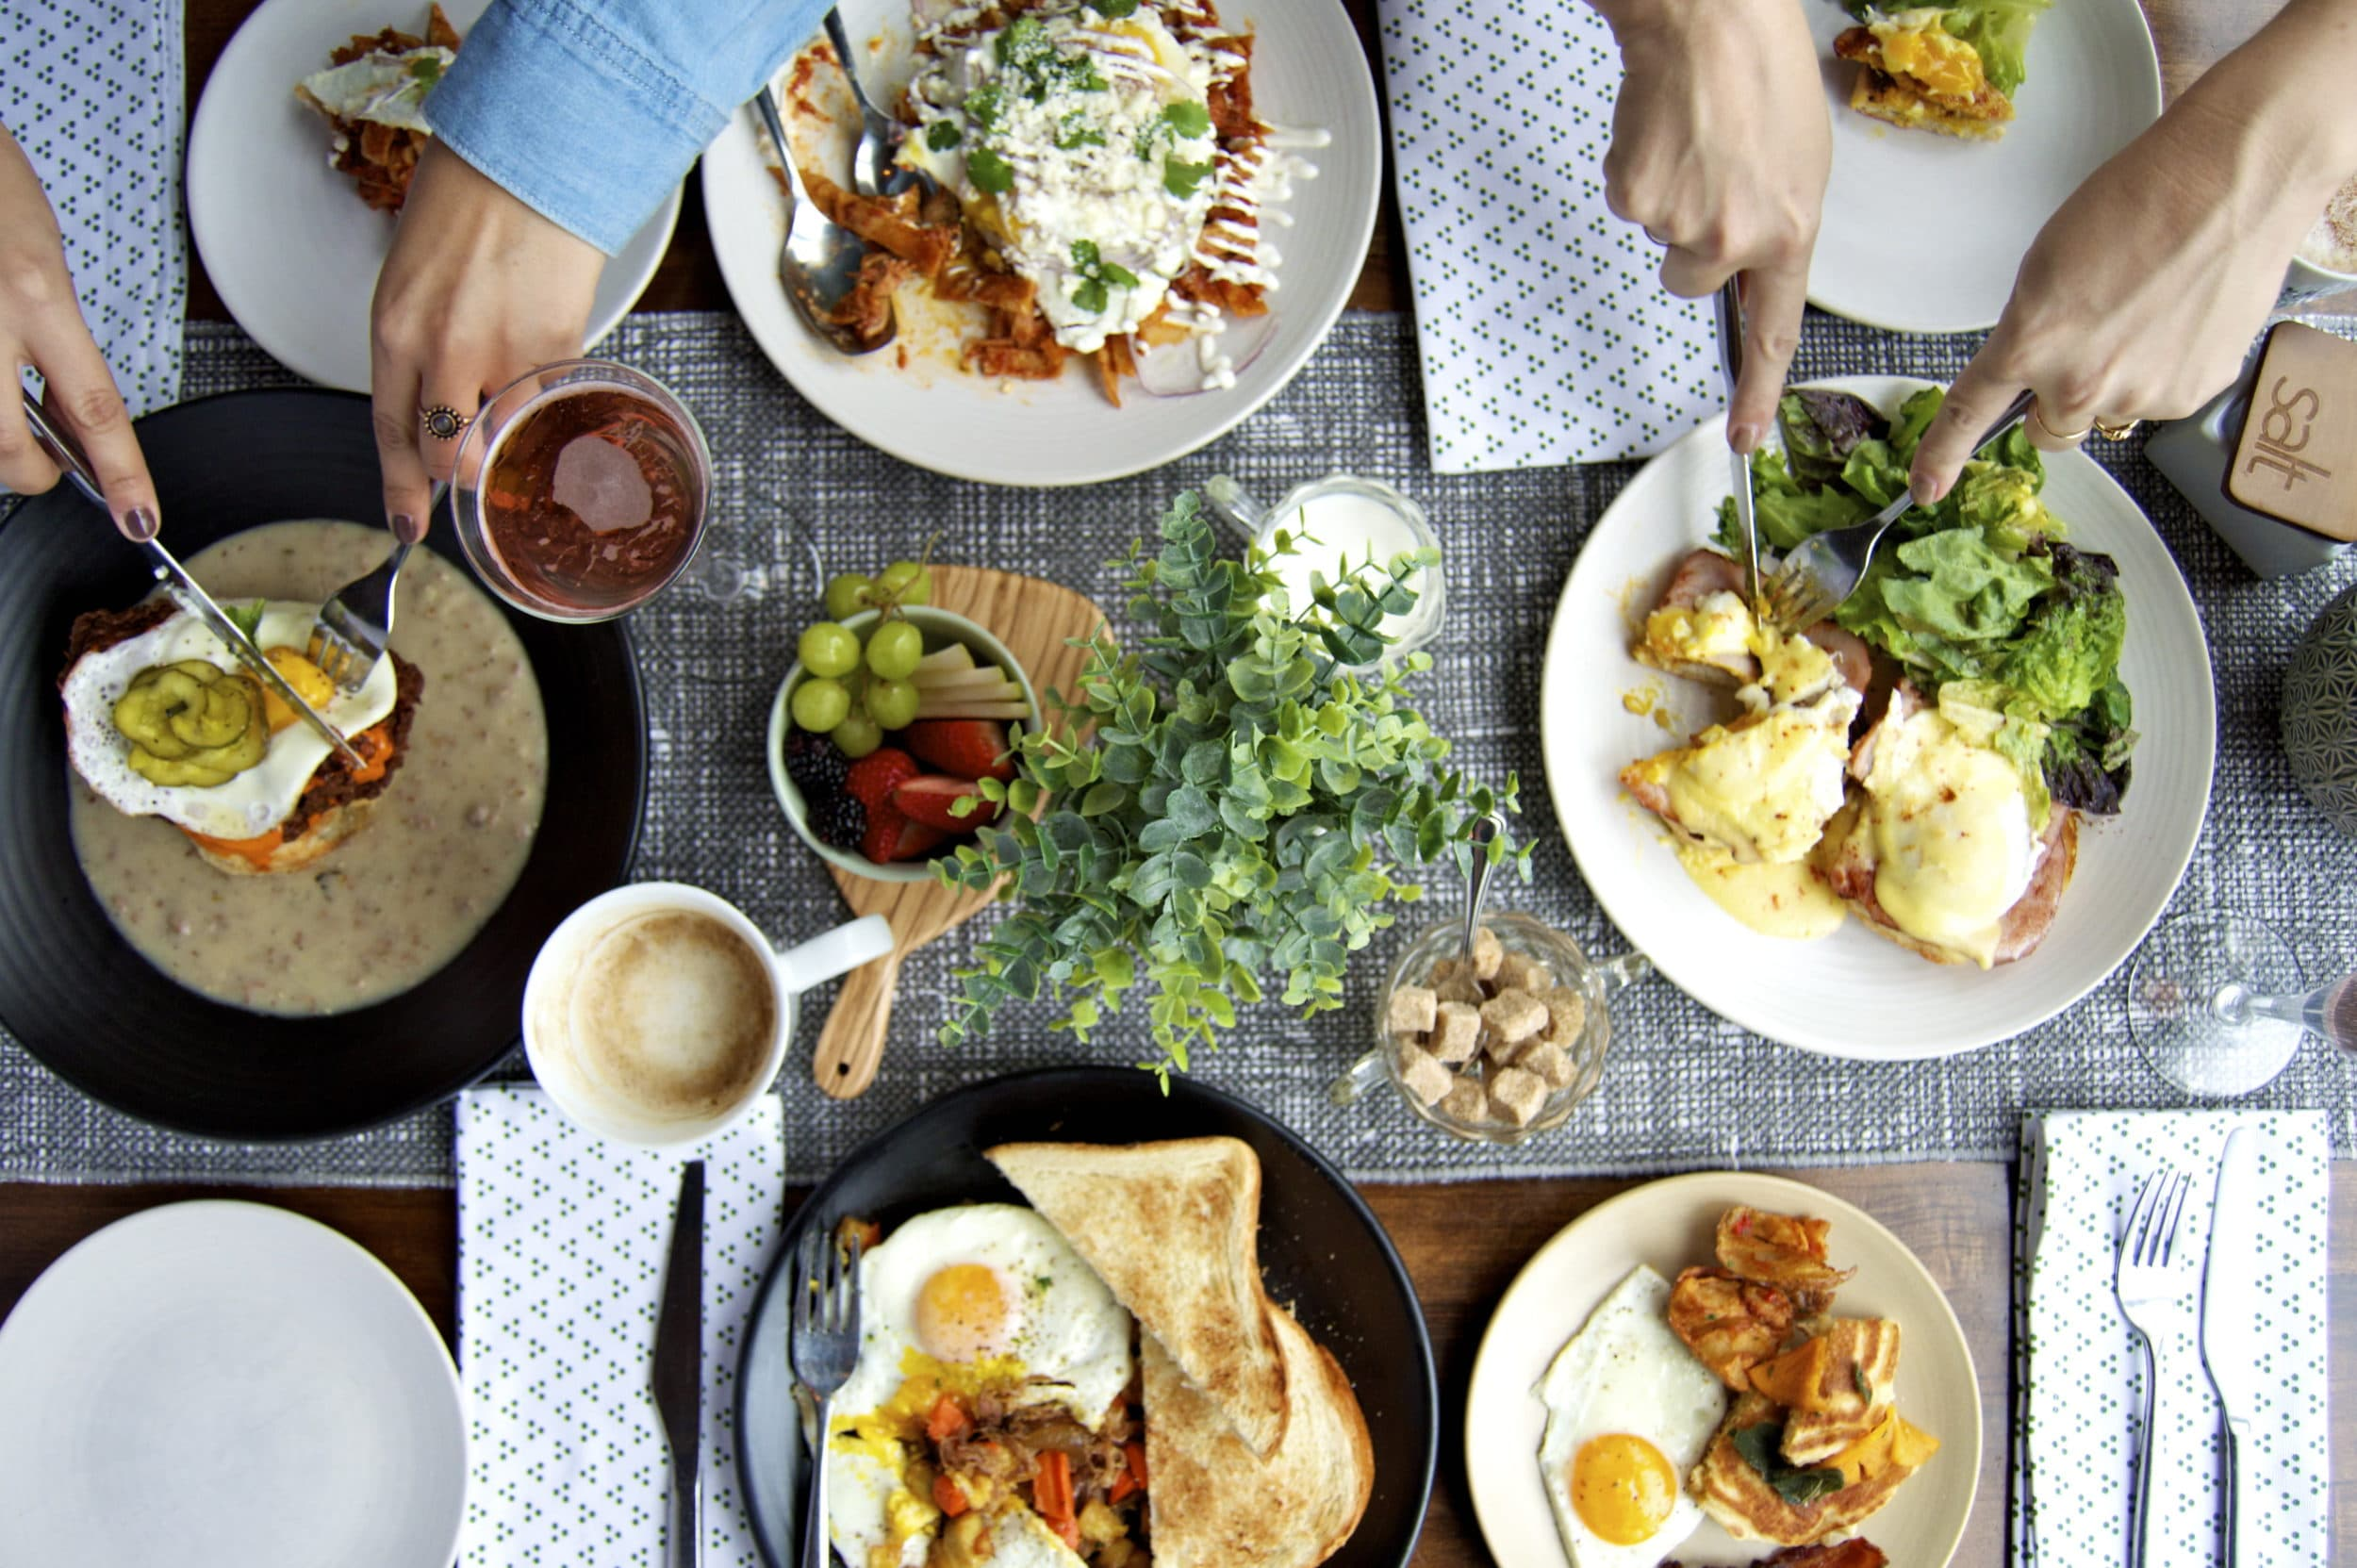 Top-down photo of people eating brunch items at Whisknladle La Jolla restaurant.